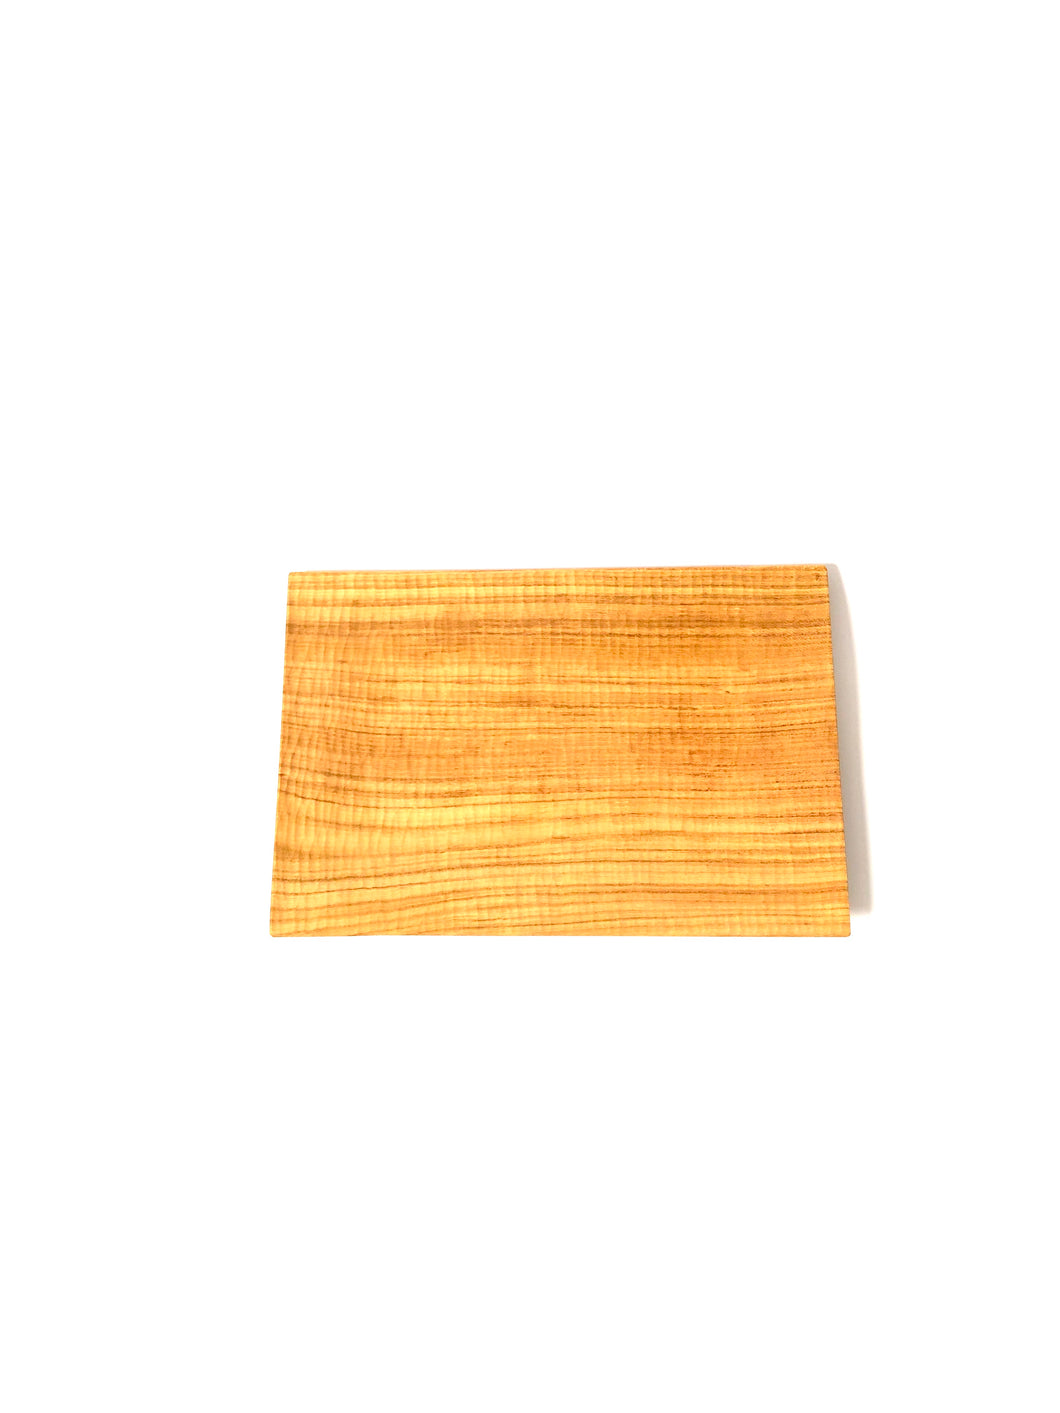 Japanese Handcrafted Wooden Rectangular Plate Cherry - 桜の角皿 27cm x 18cm